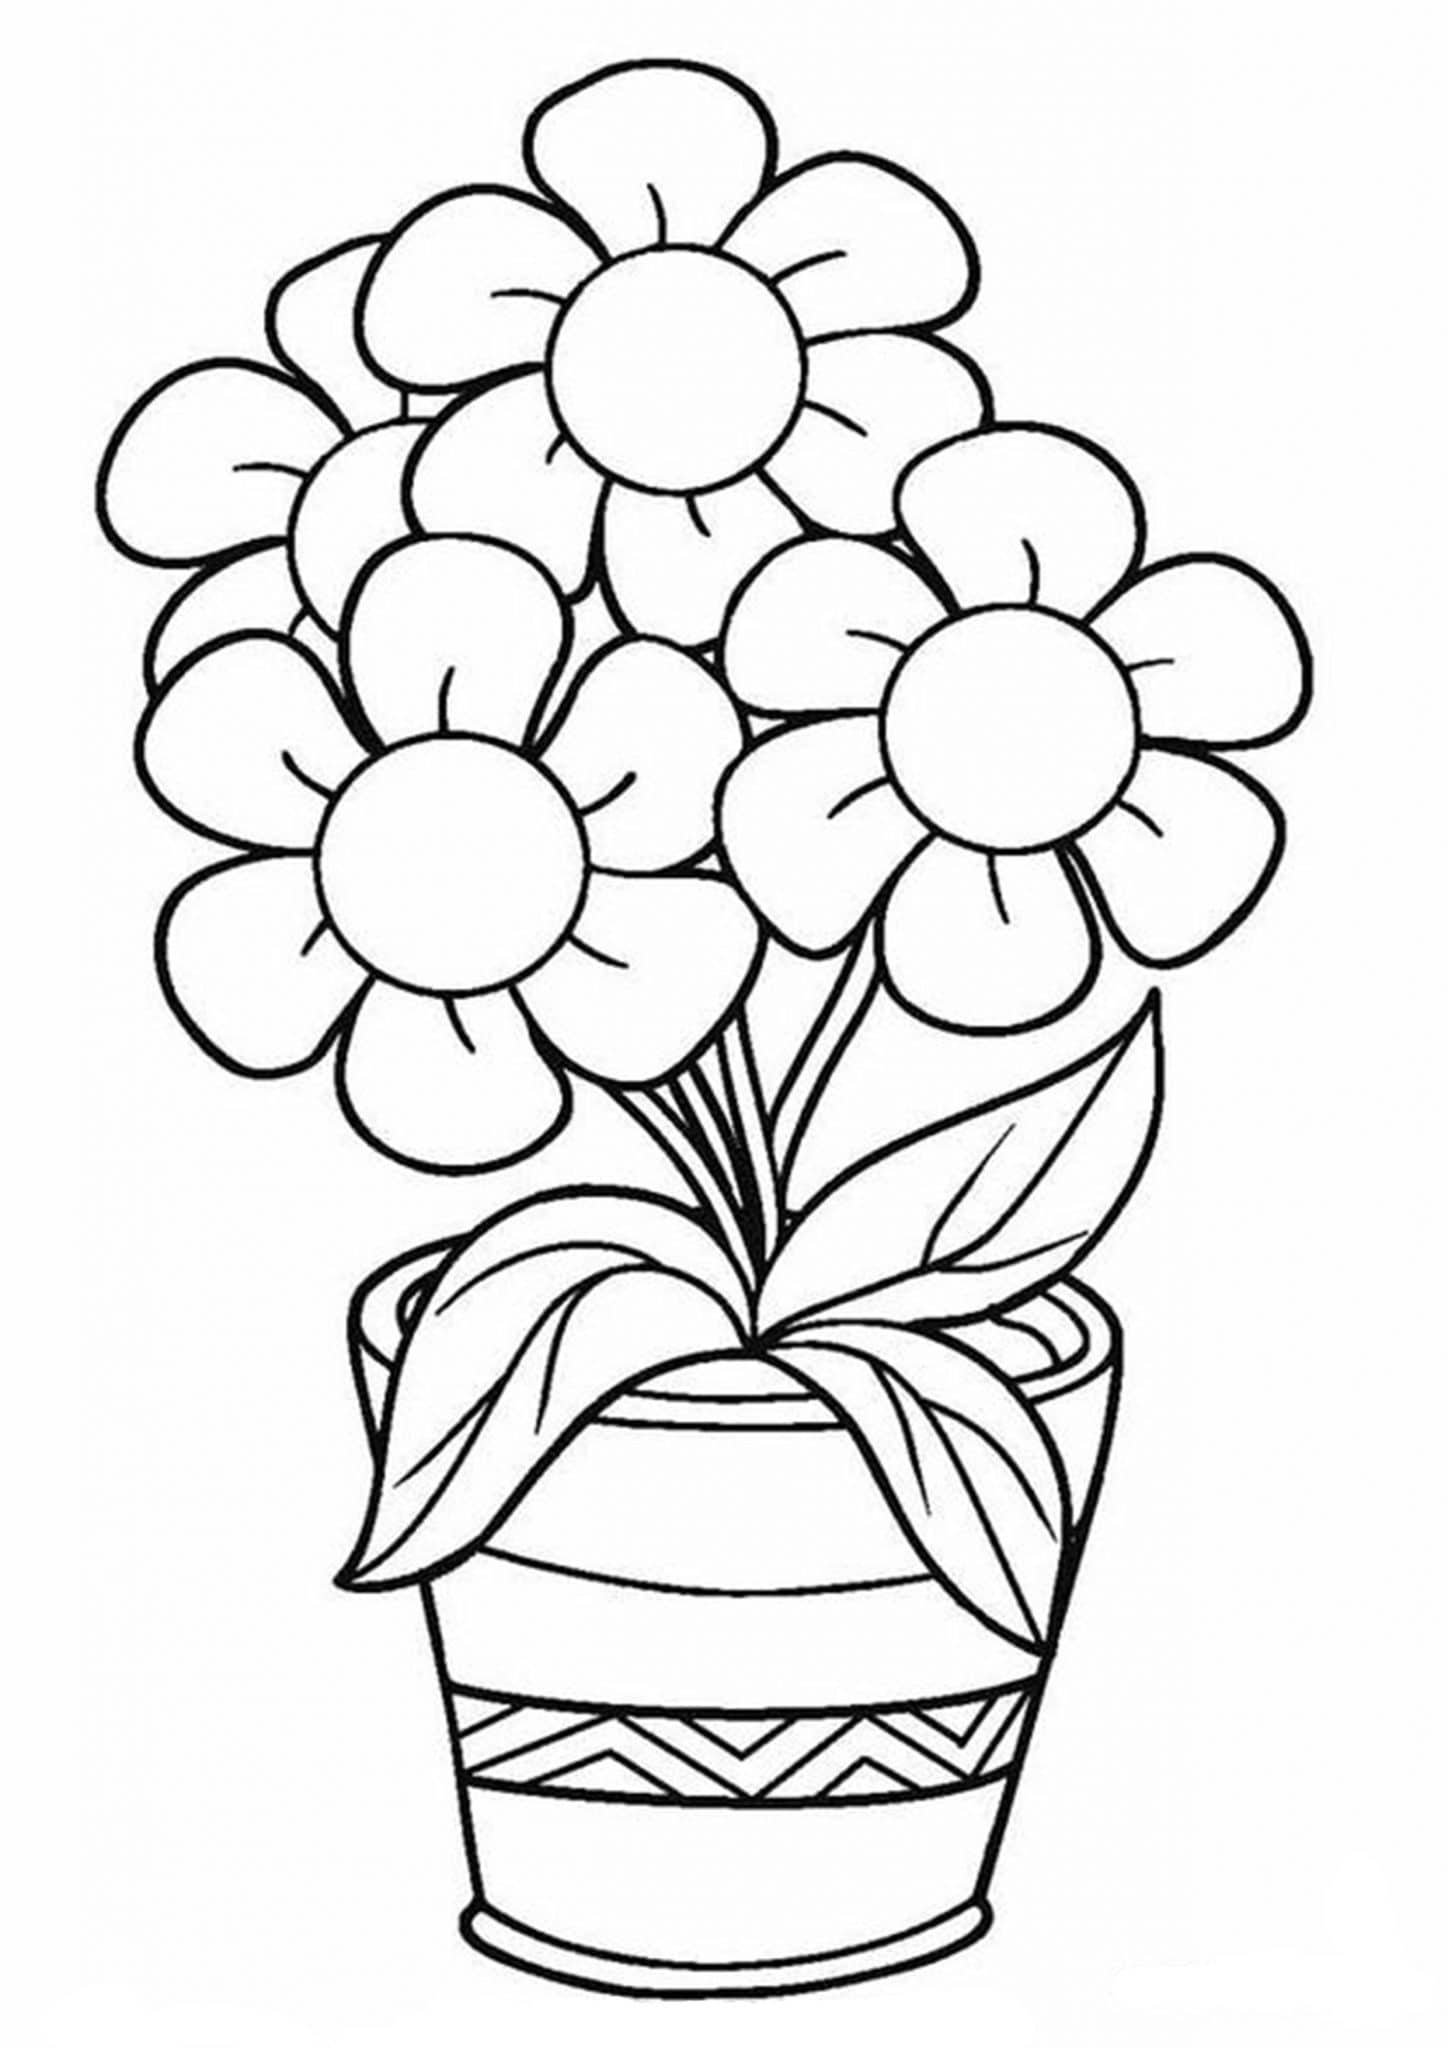 flower printable coloring pages rose flower for beautiful lady coloring page download pages printable coloring flower